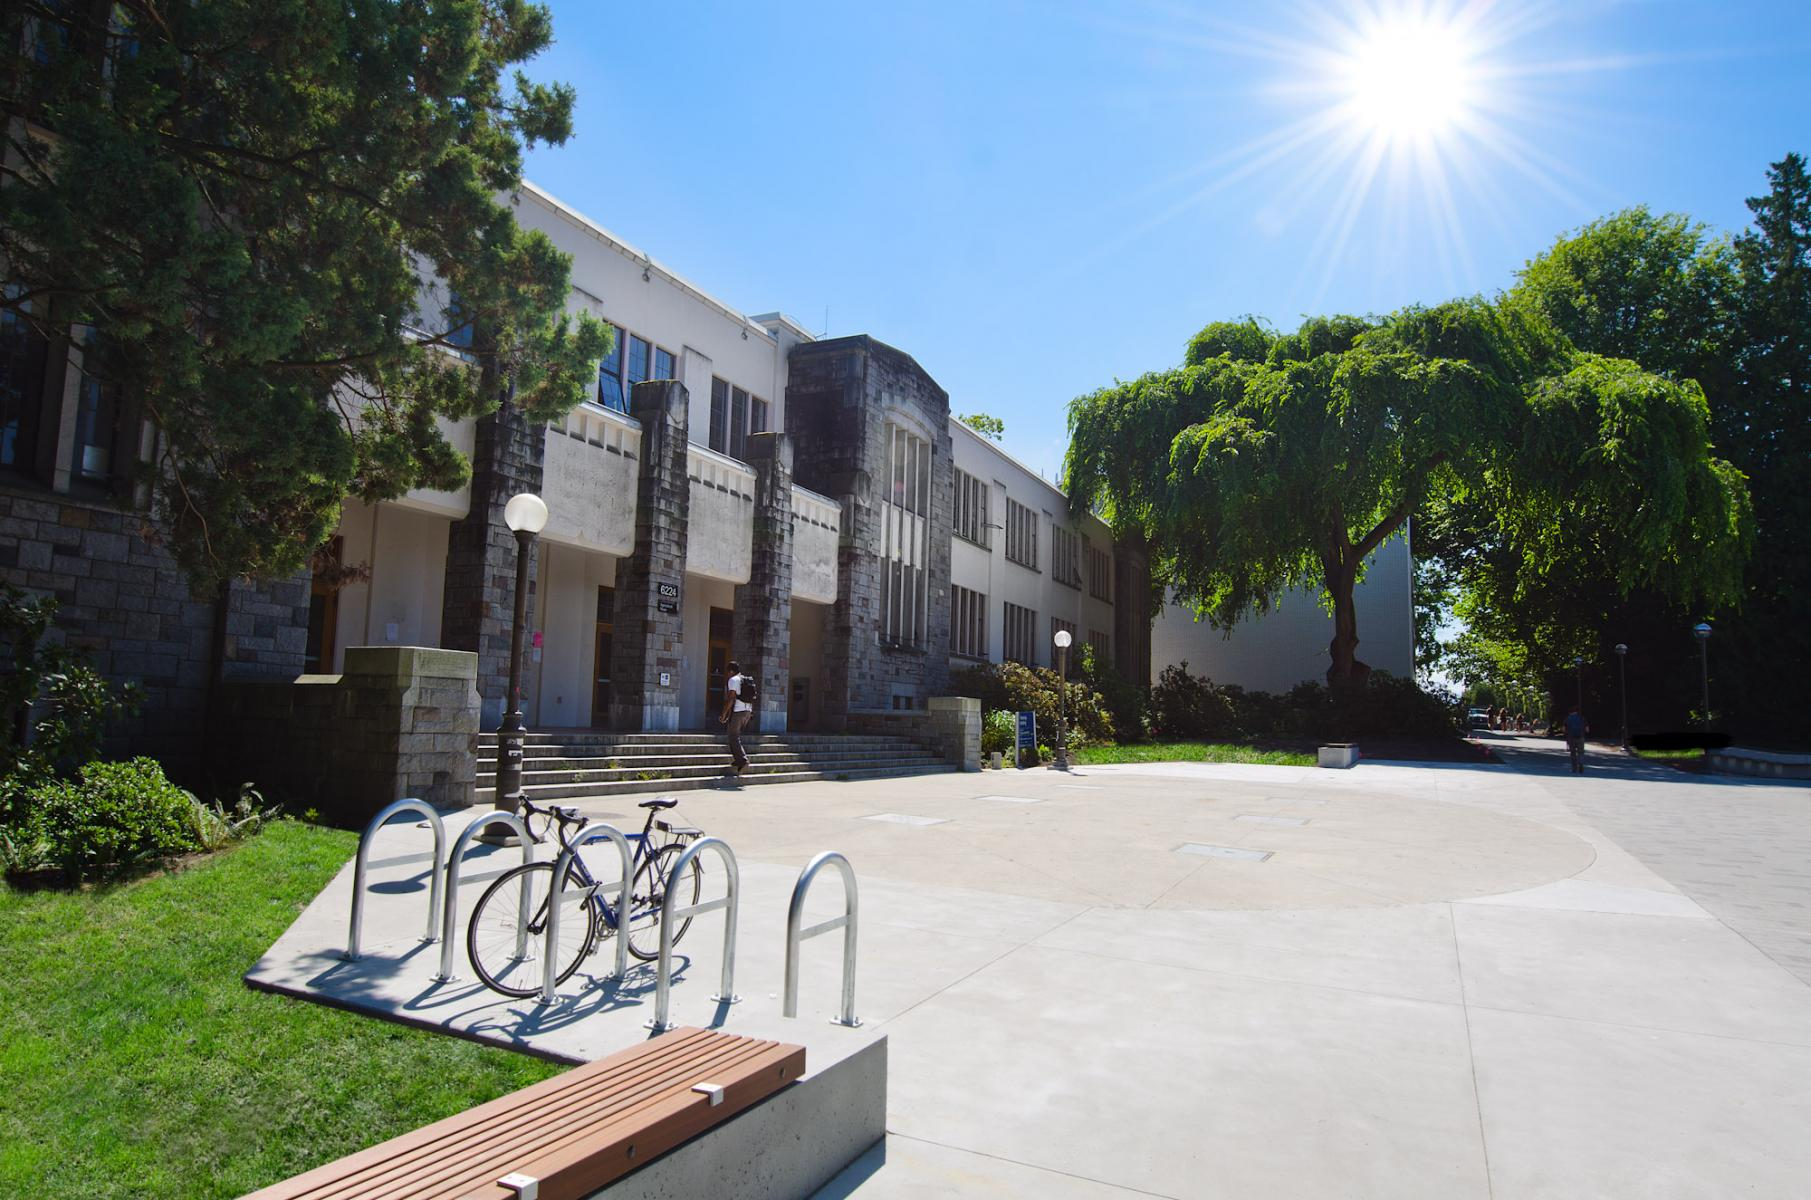 Department of Physics & Astronomy, Hennings Building